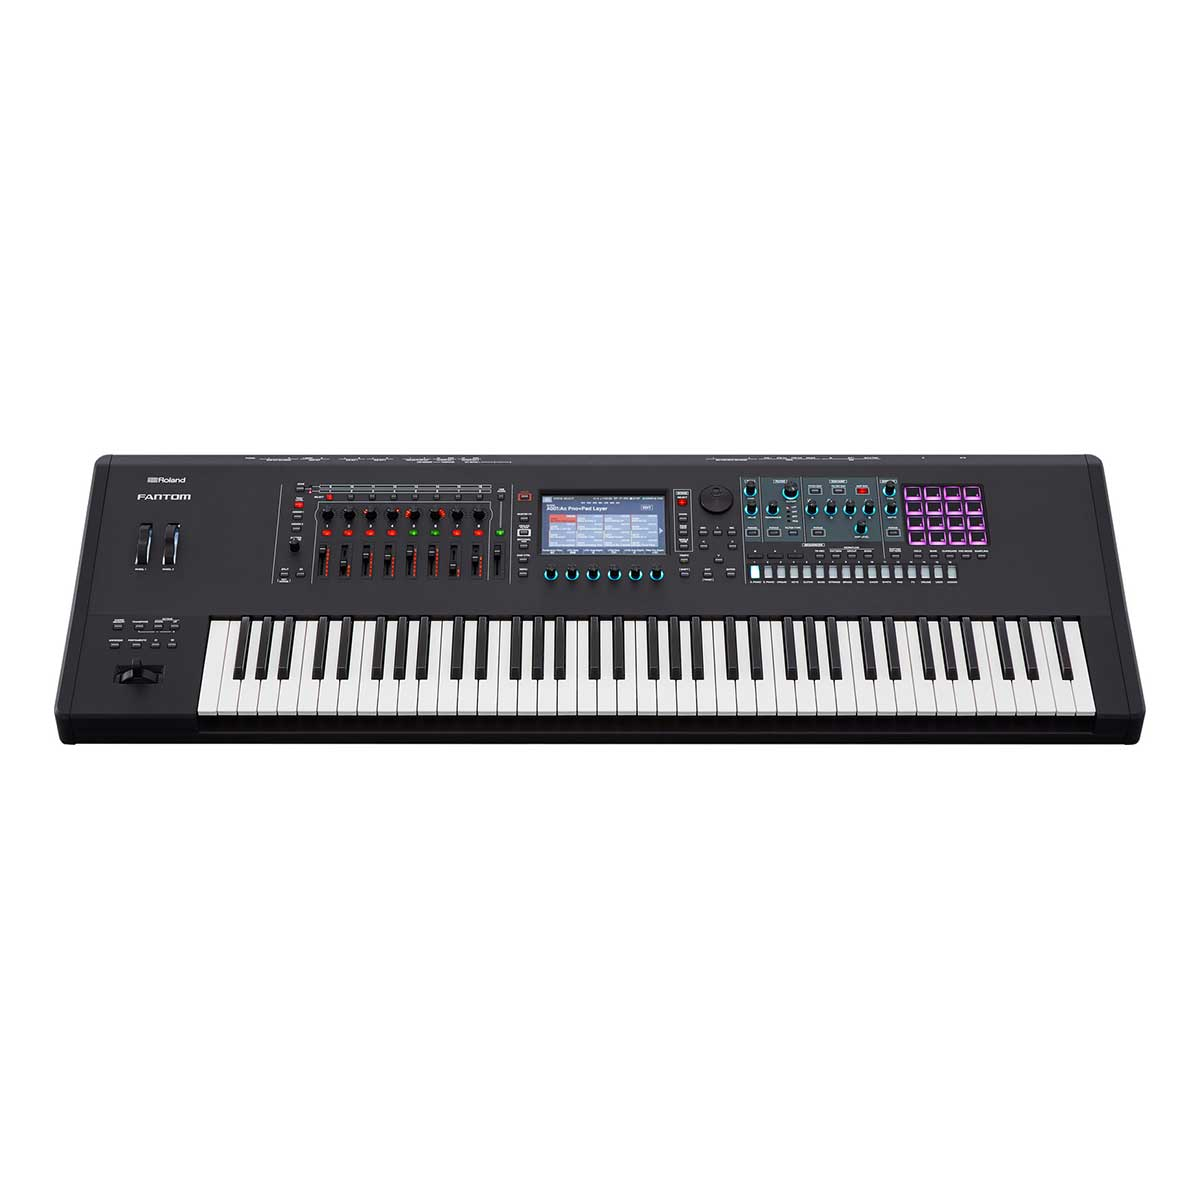 Roland Fantom 7 semi-weighted Keyboard Synthesizer Workstation with 76 keys and aftertouch